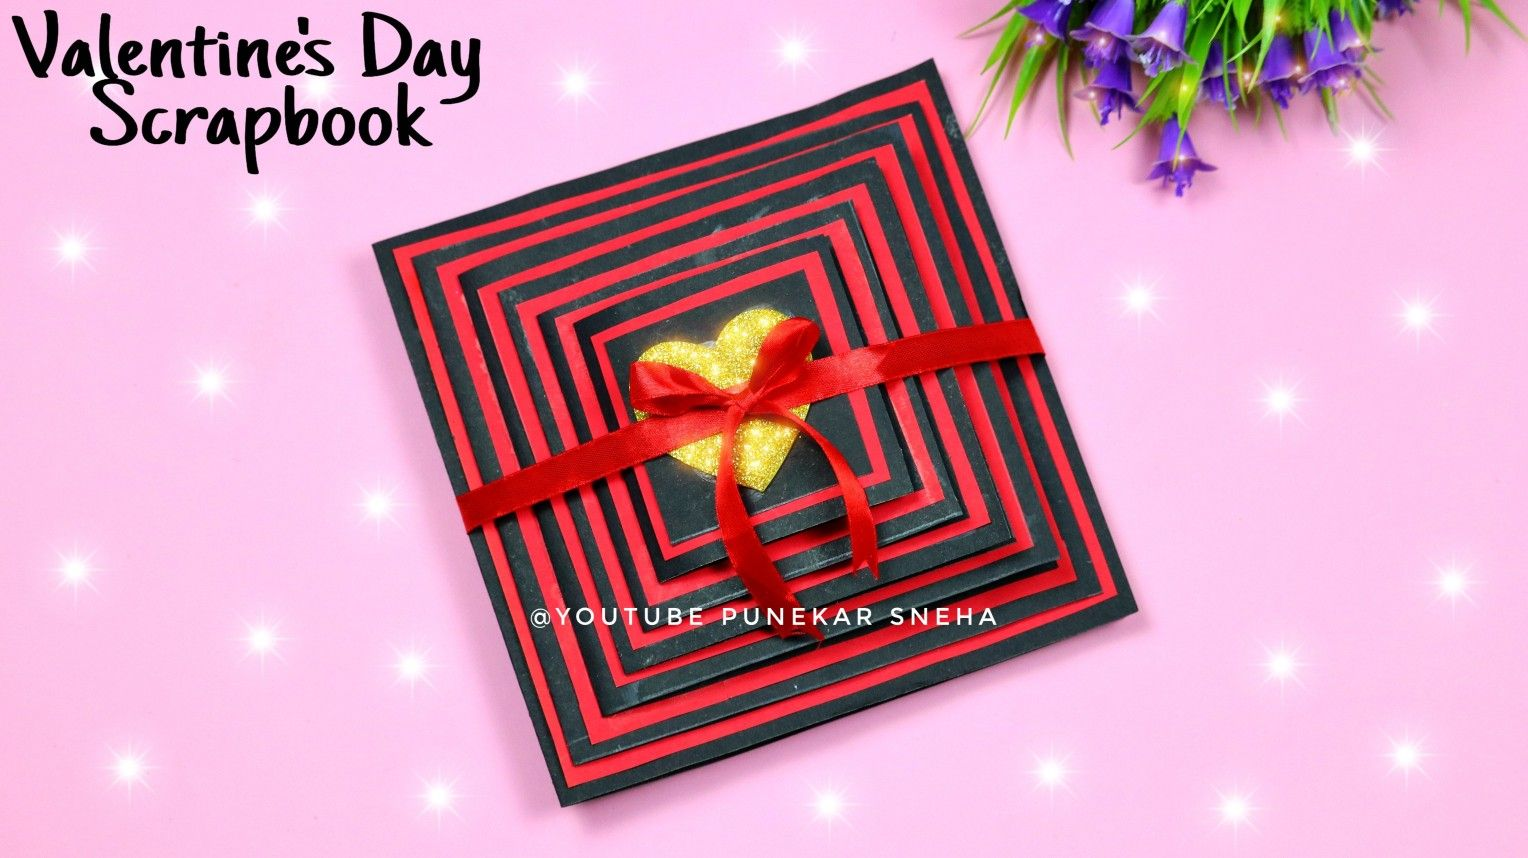 Valentine S Day Scrapbook Making How To Make Scrapbook For Valentine S Day Anniversary Scrapbook In 2021 Anniversary Scrapbook How To Make Scrapbook Book Making